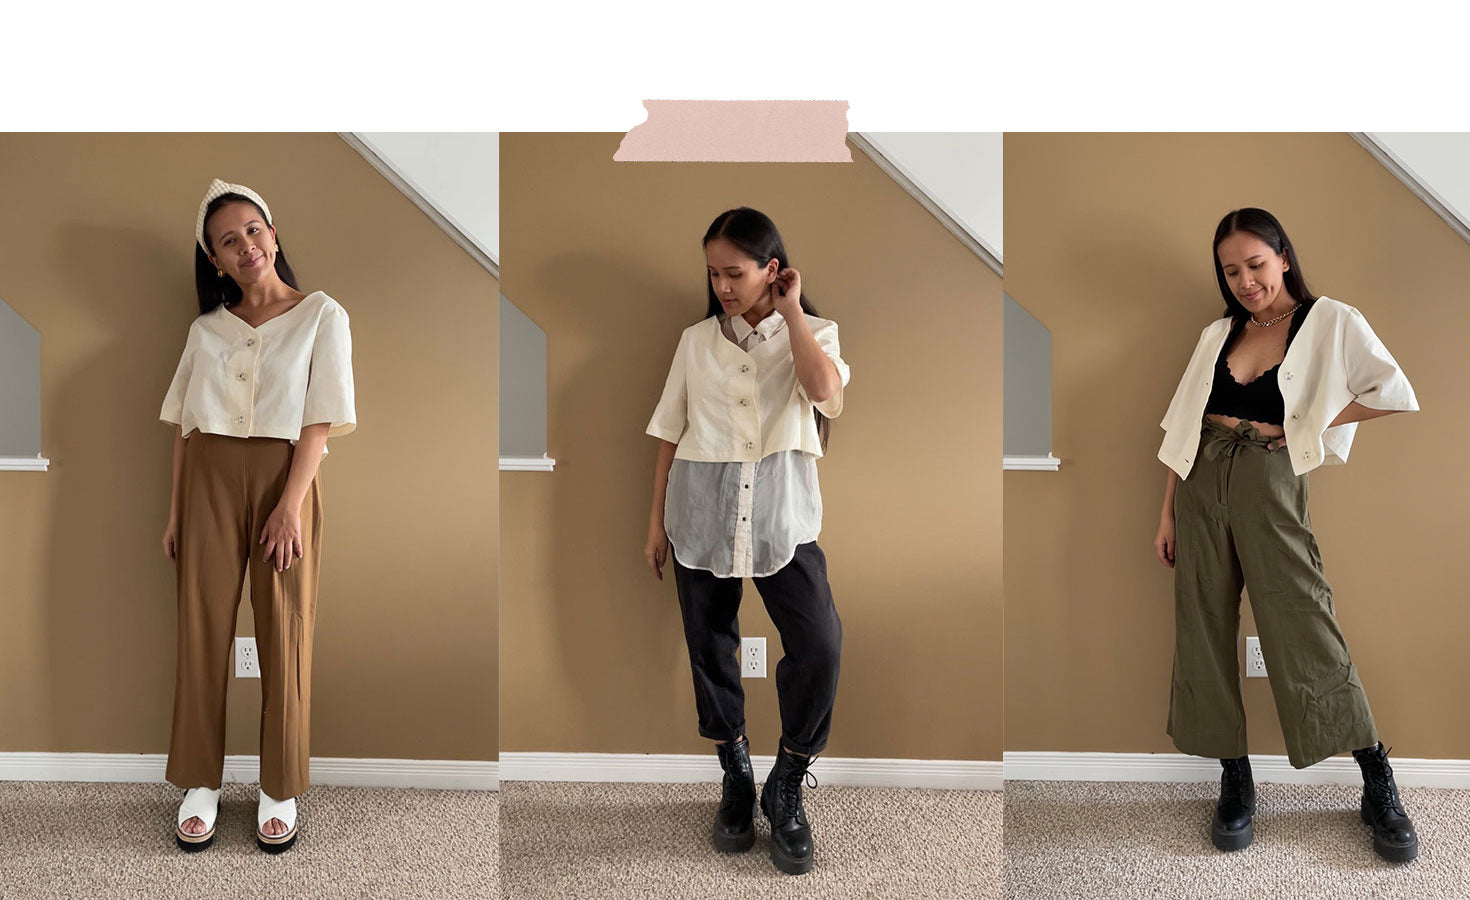 glass garden blouse outfits for spring styled by with nini